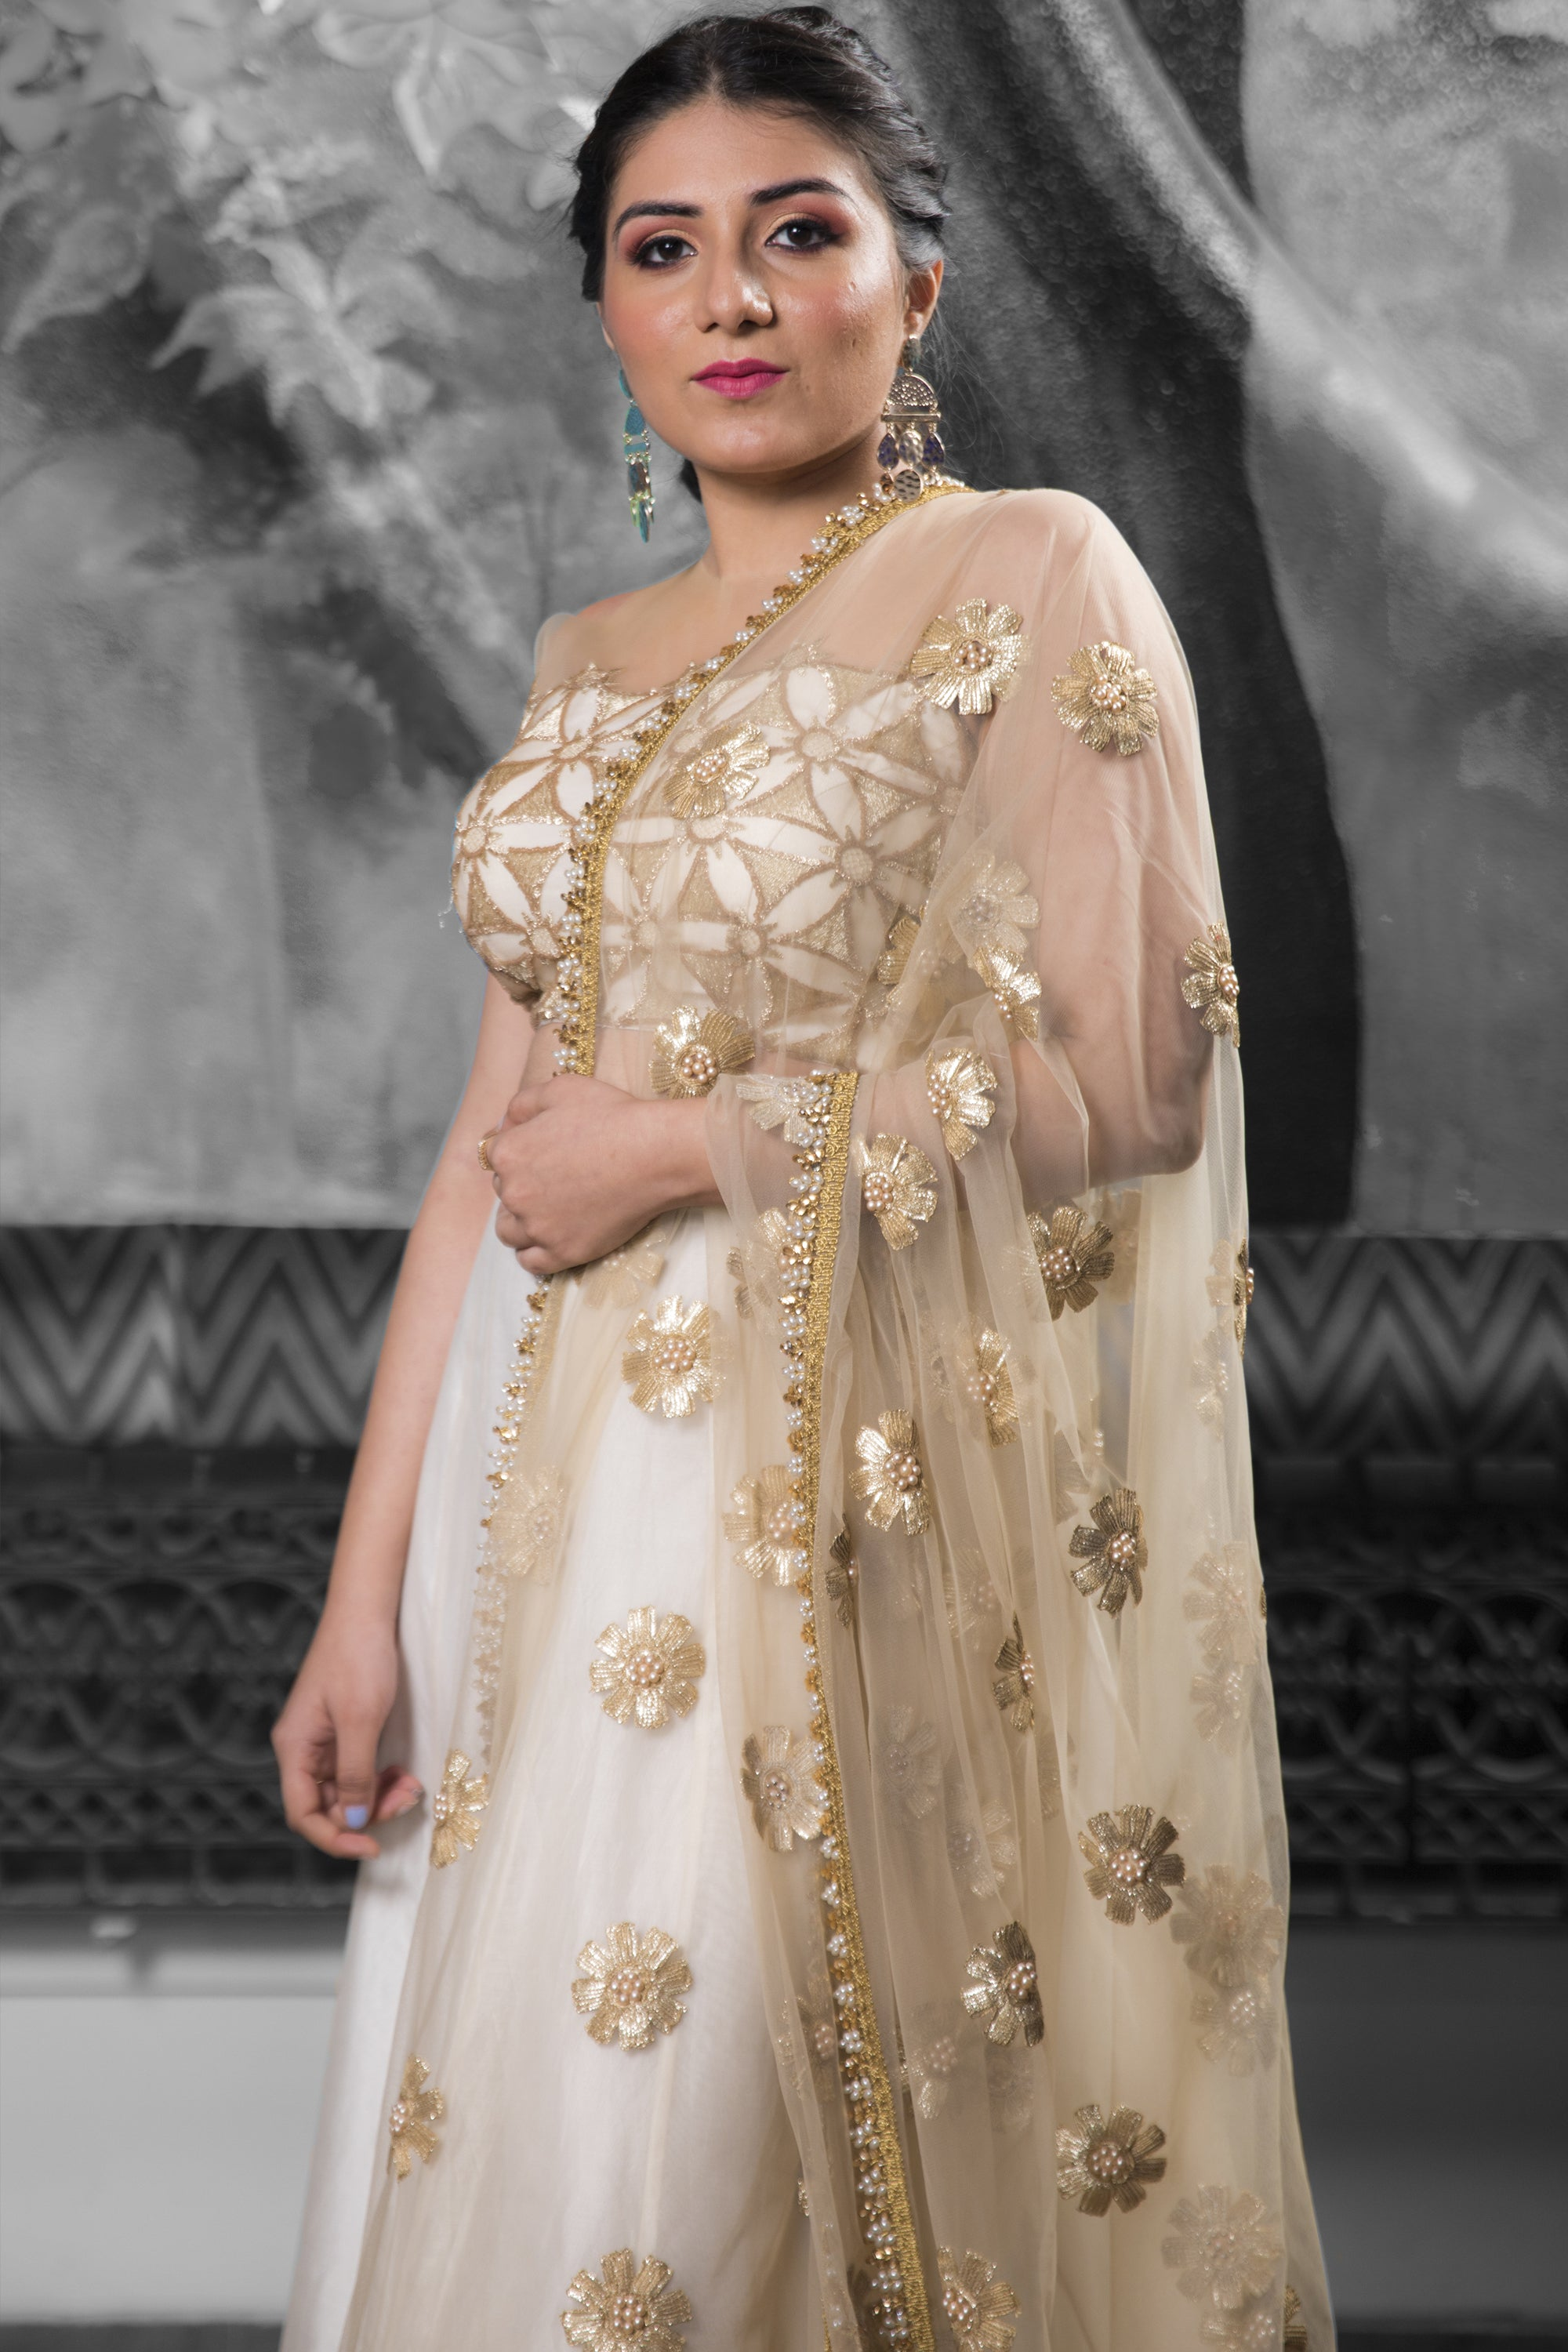 Ivory & Gold Lehenga With Cutwork & Pearls CLOSE